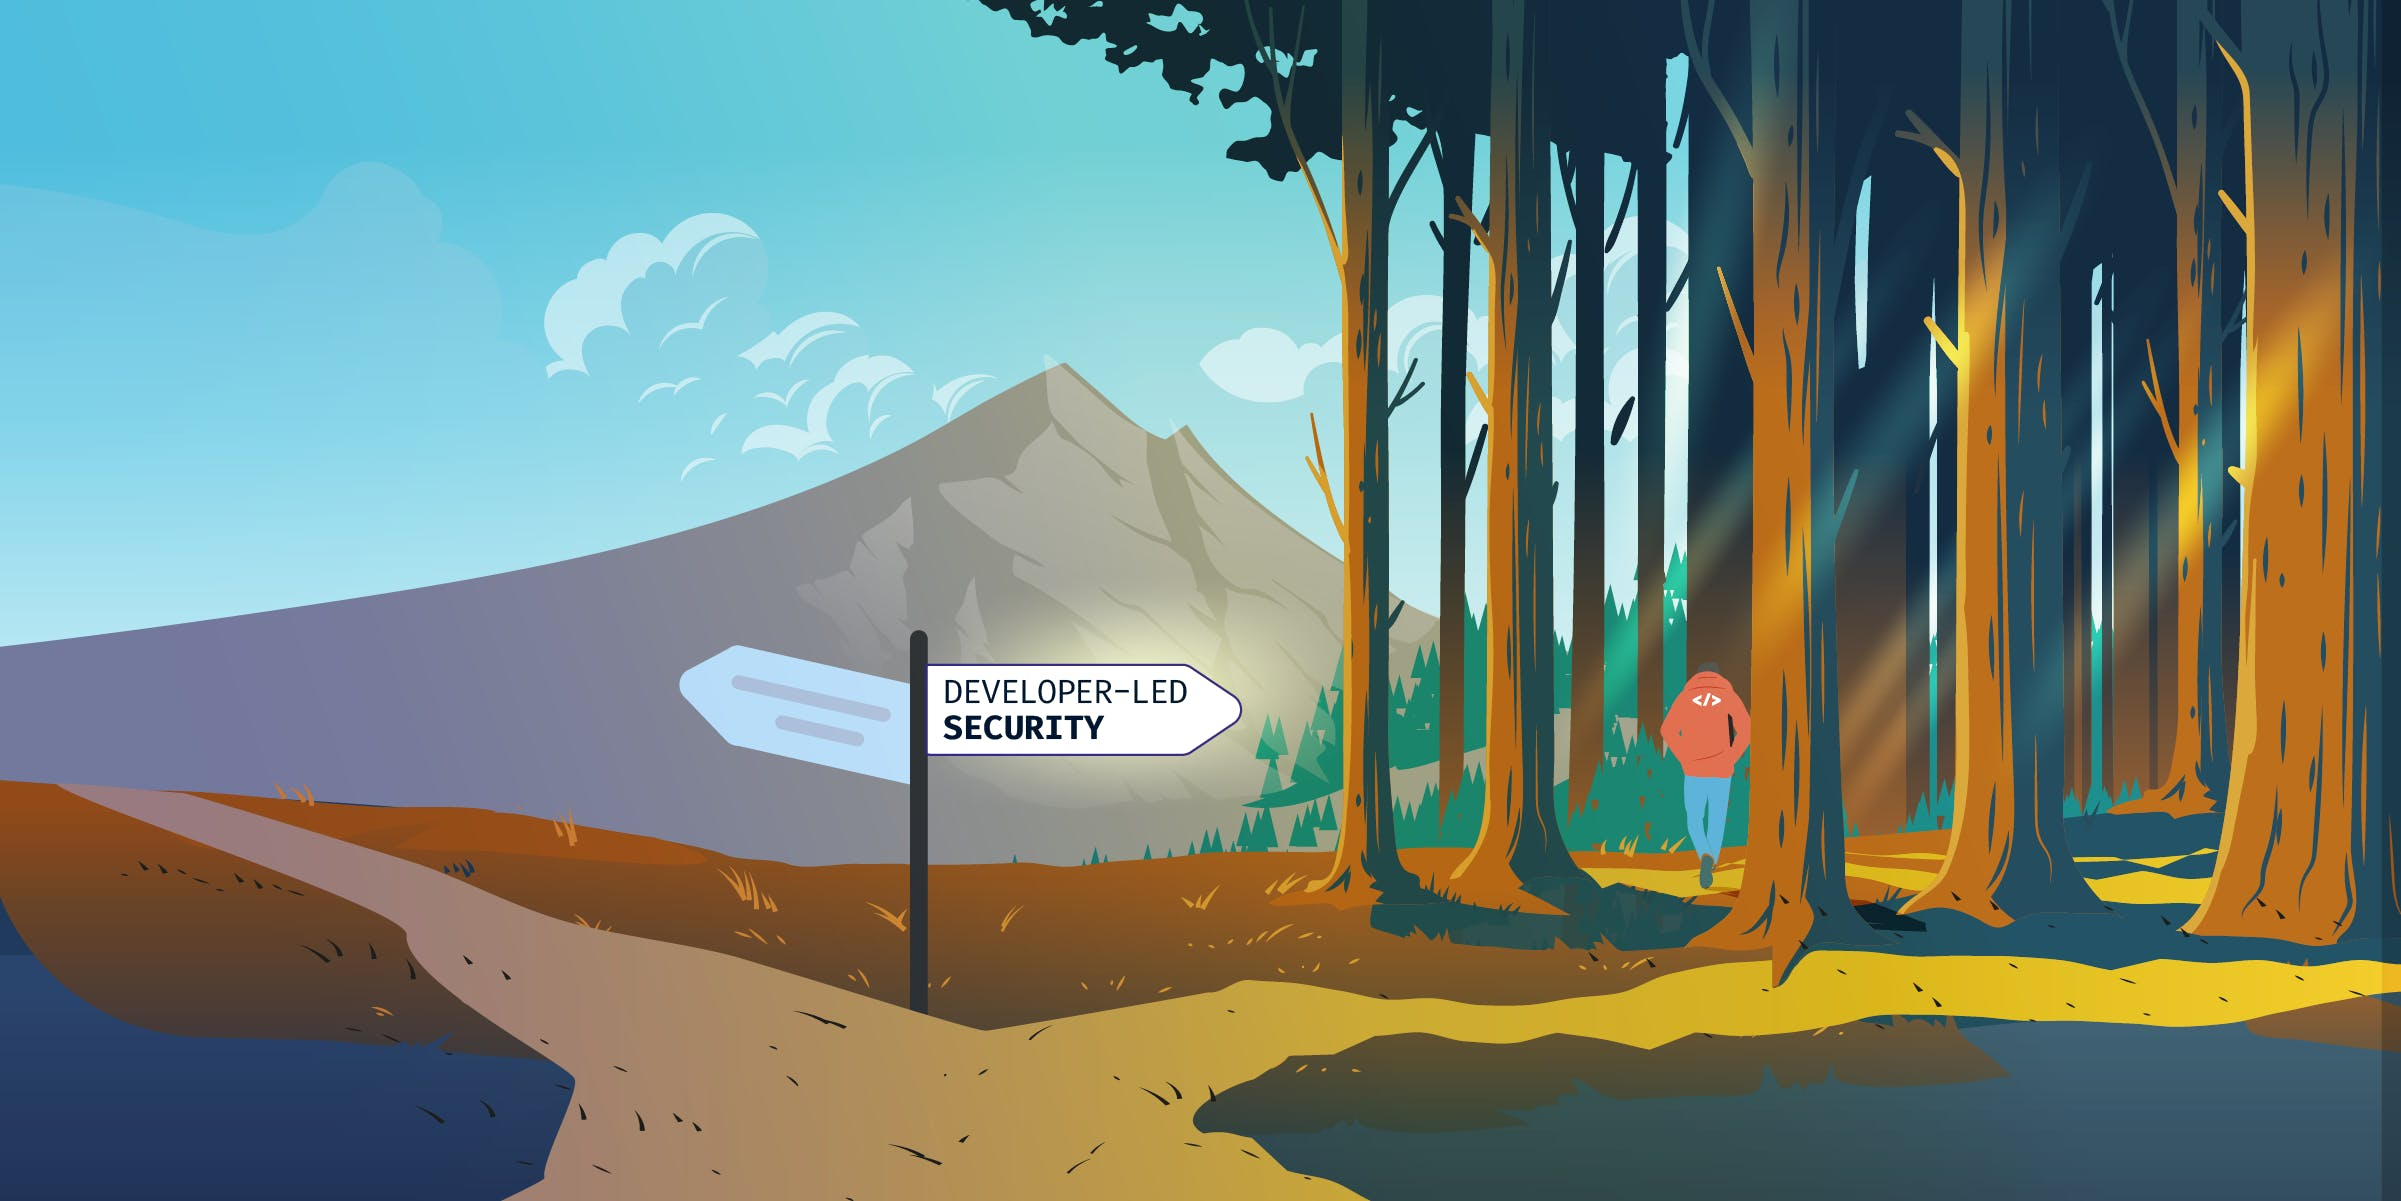 A Developer takes the path less traveled by: Developer-led Code Security.